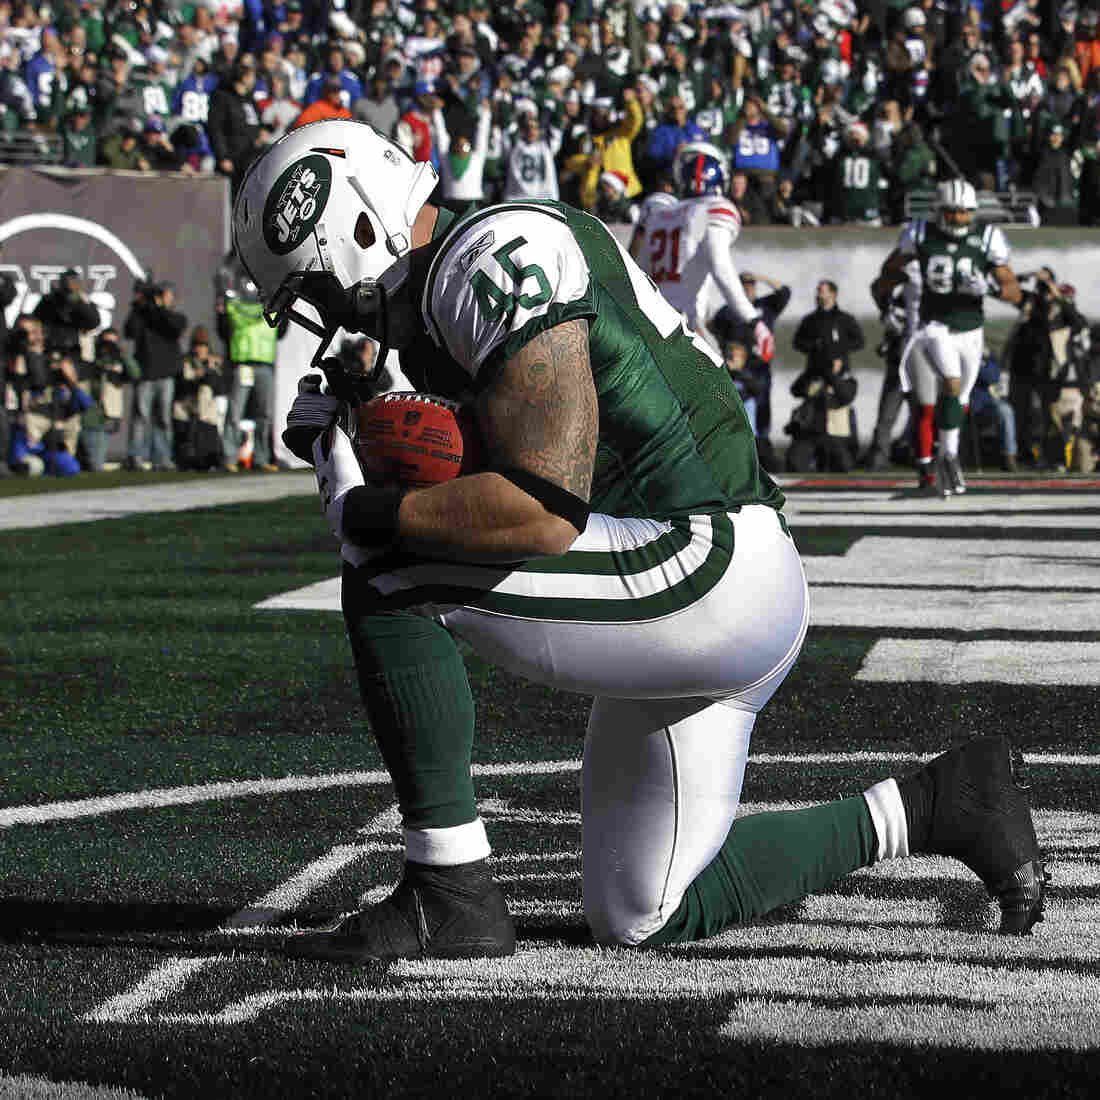 New York Jets tight end Josh Baker celebrates after scoring a touchdown during the first quarter in the game against the New York Giants in 2011.